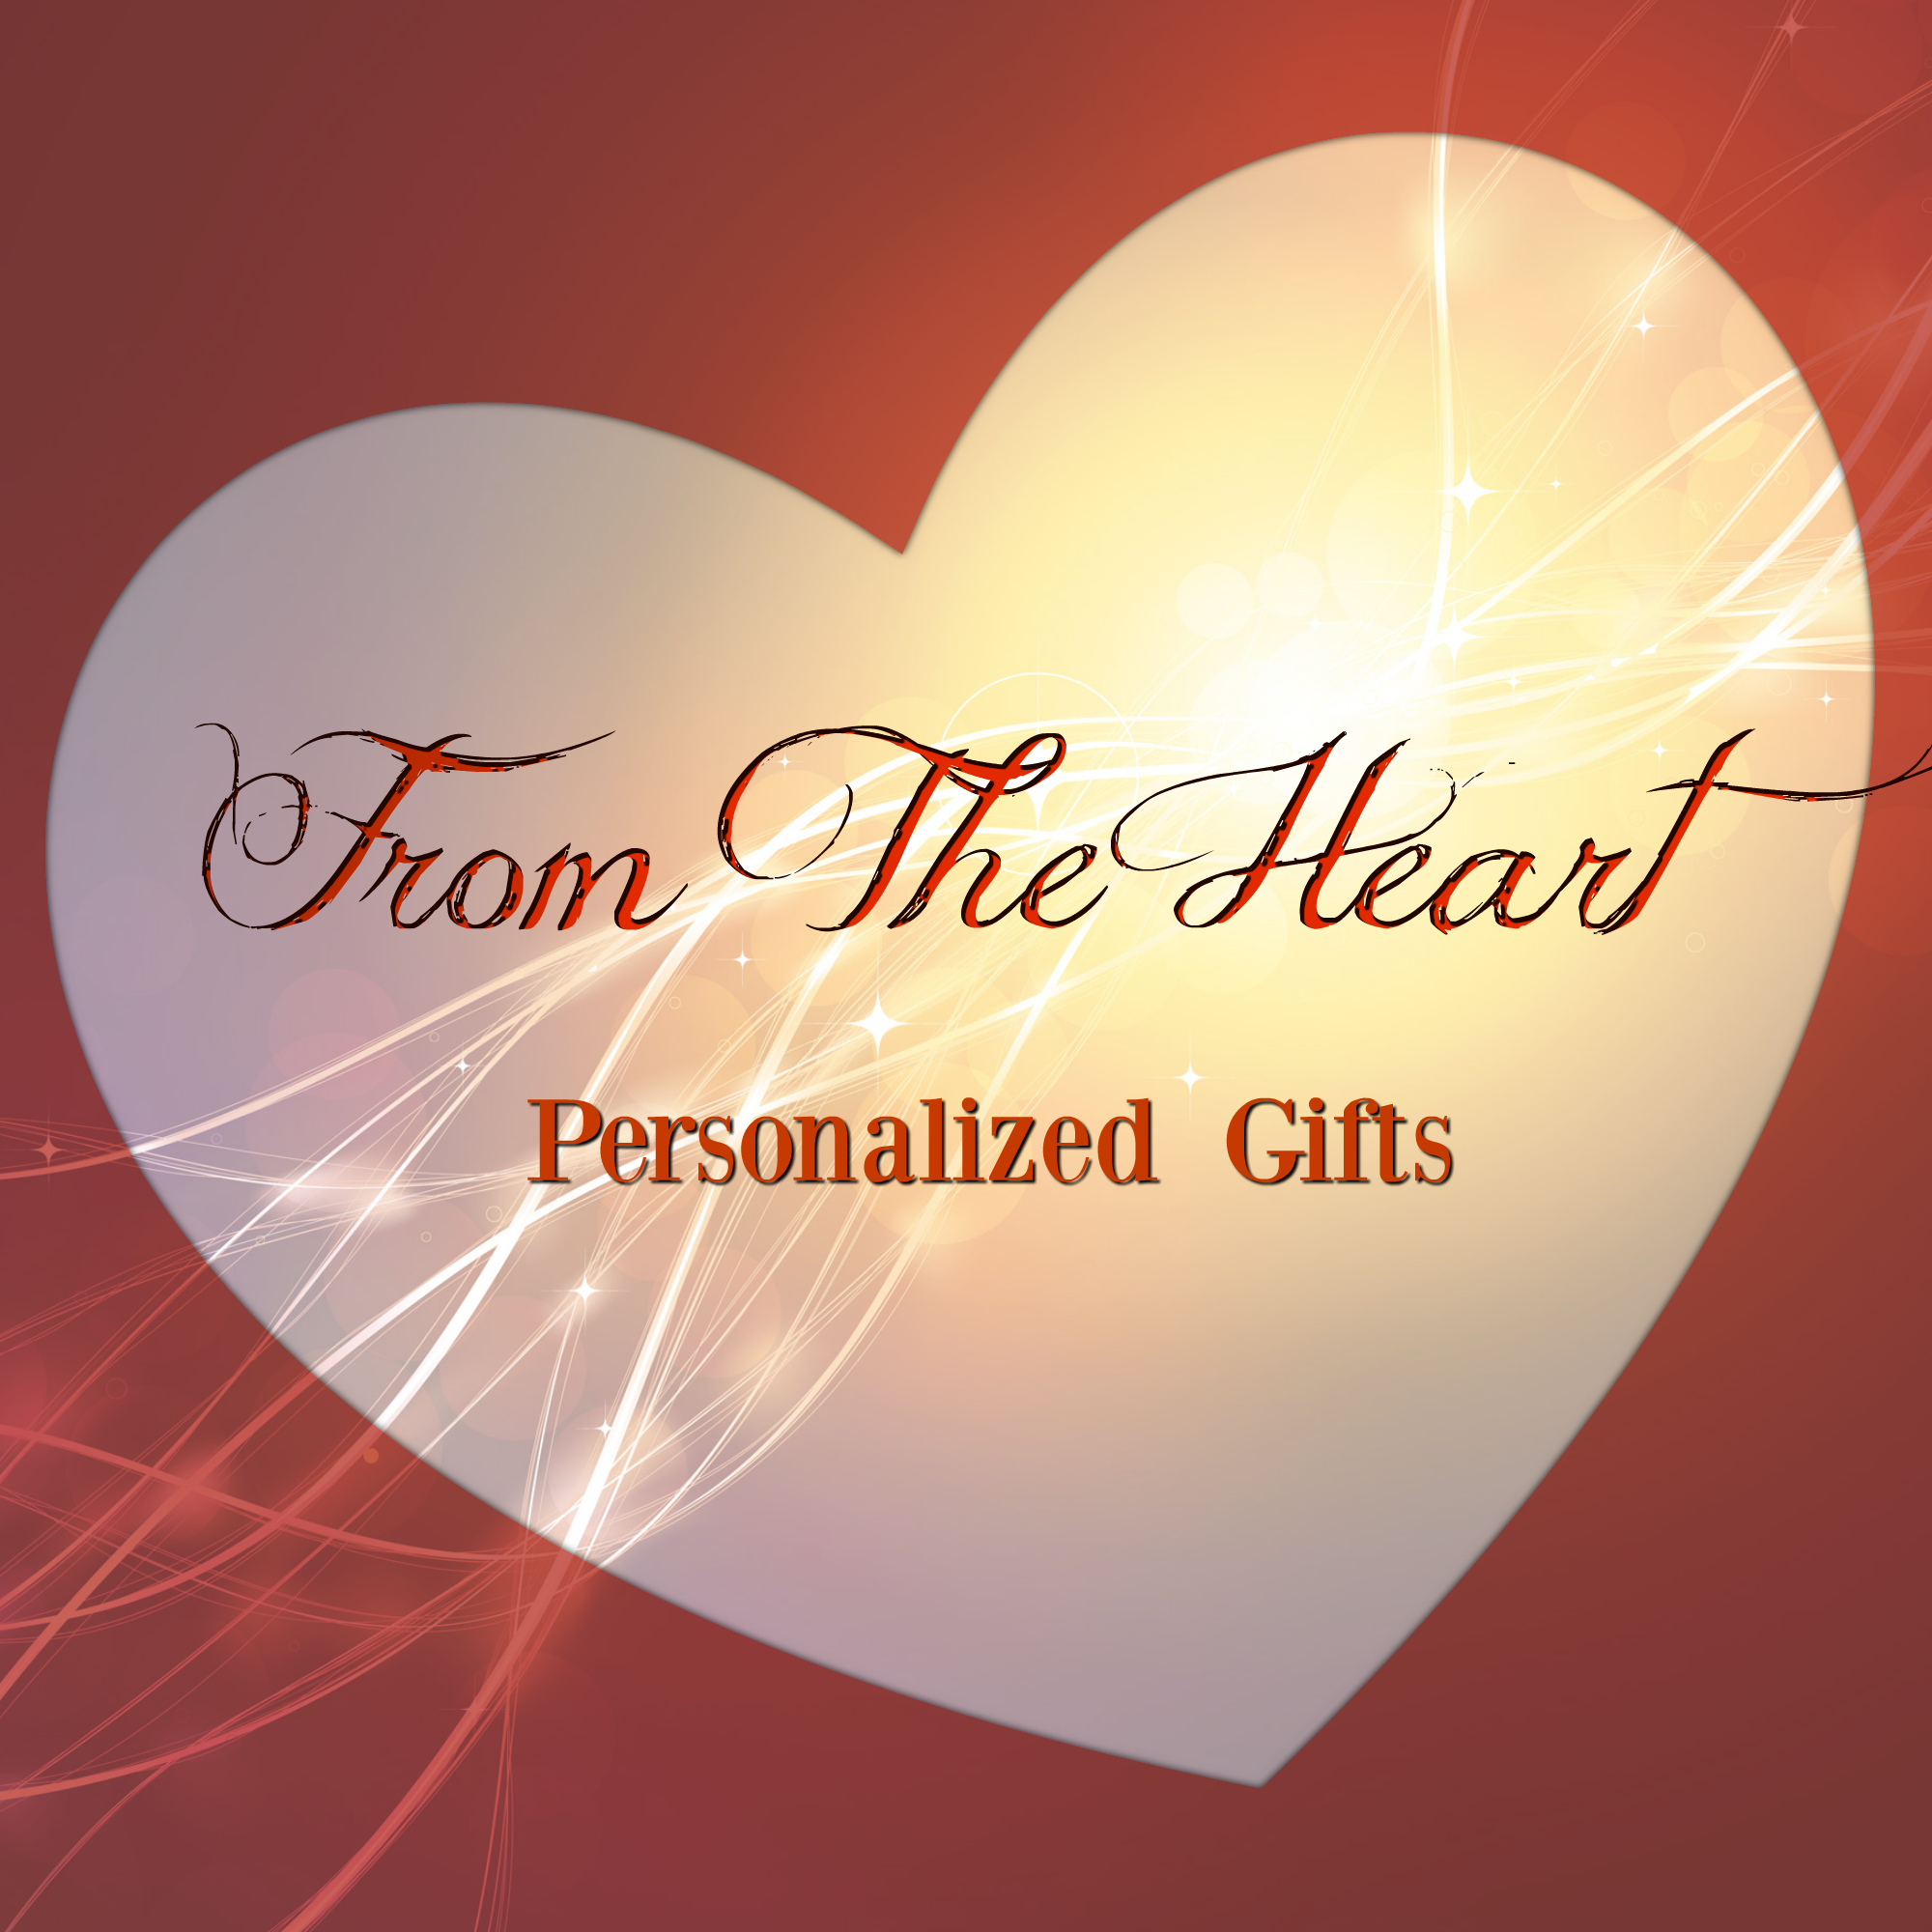 From The Heart Personalized Gifts